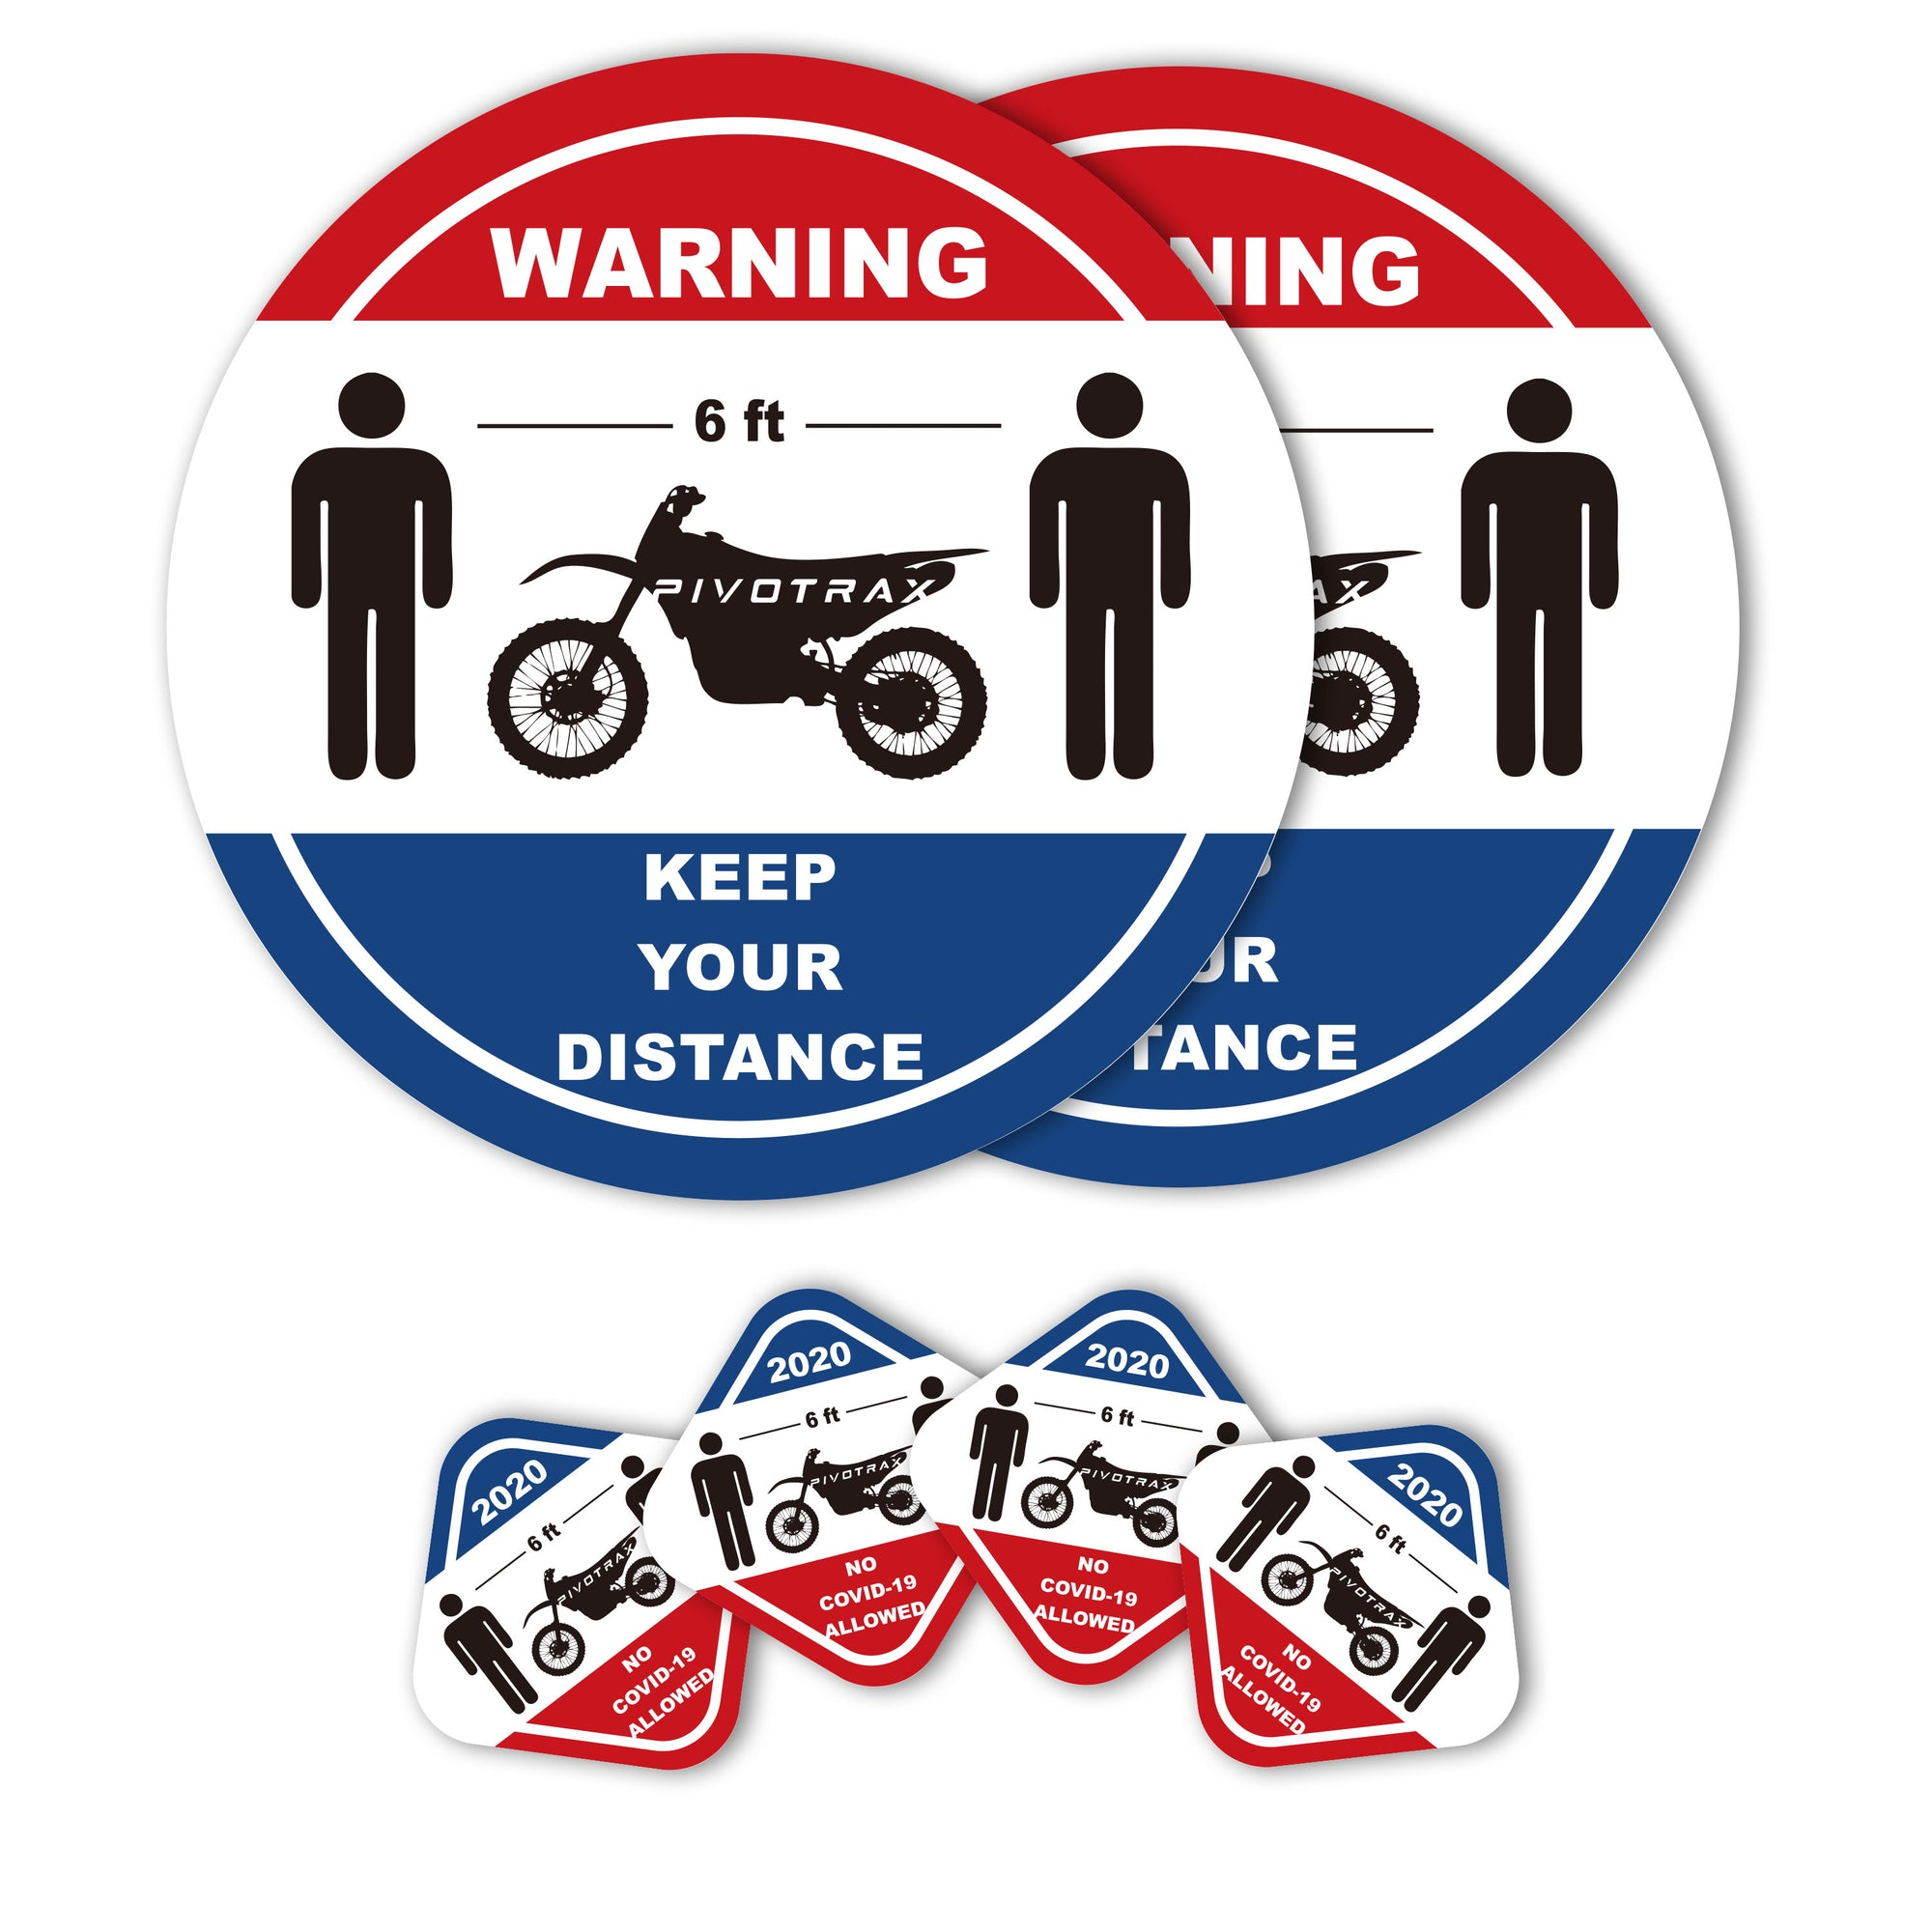 PIVOTRAX Waterproof Vinyl Stickers Package (2 Big Social Distancing Six Feet Sign Floor PVC Decals/Stand Here Floor Stickers and 4 Small Stickers)